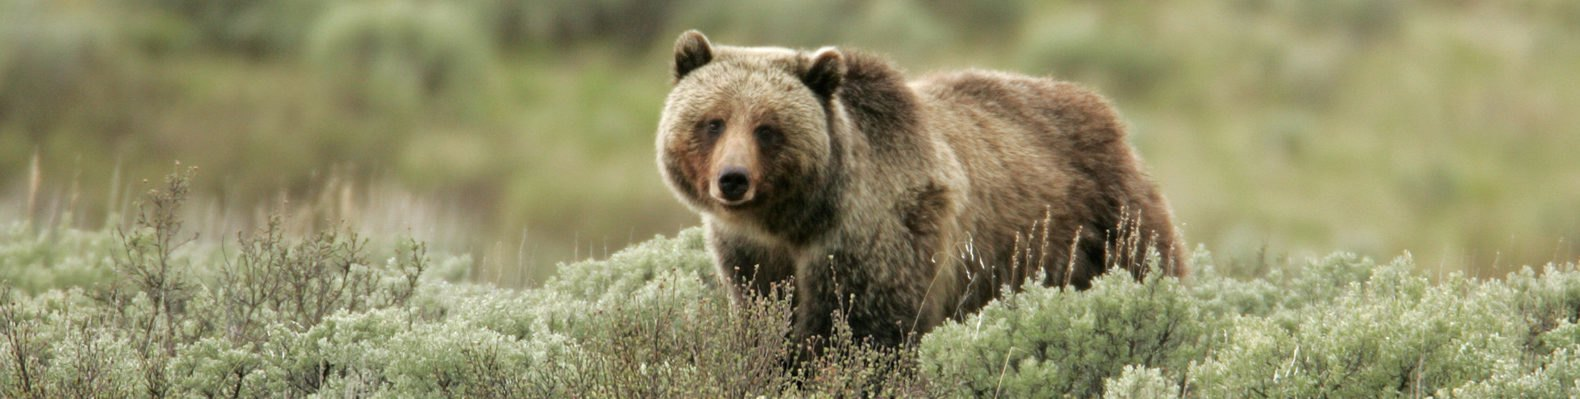 Grizzly bear walking in tall grasses